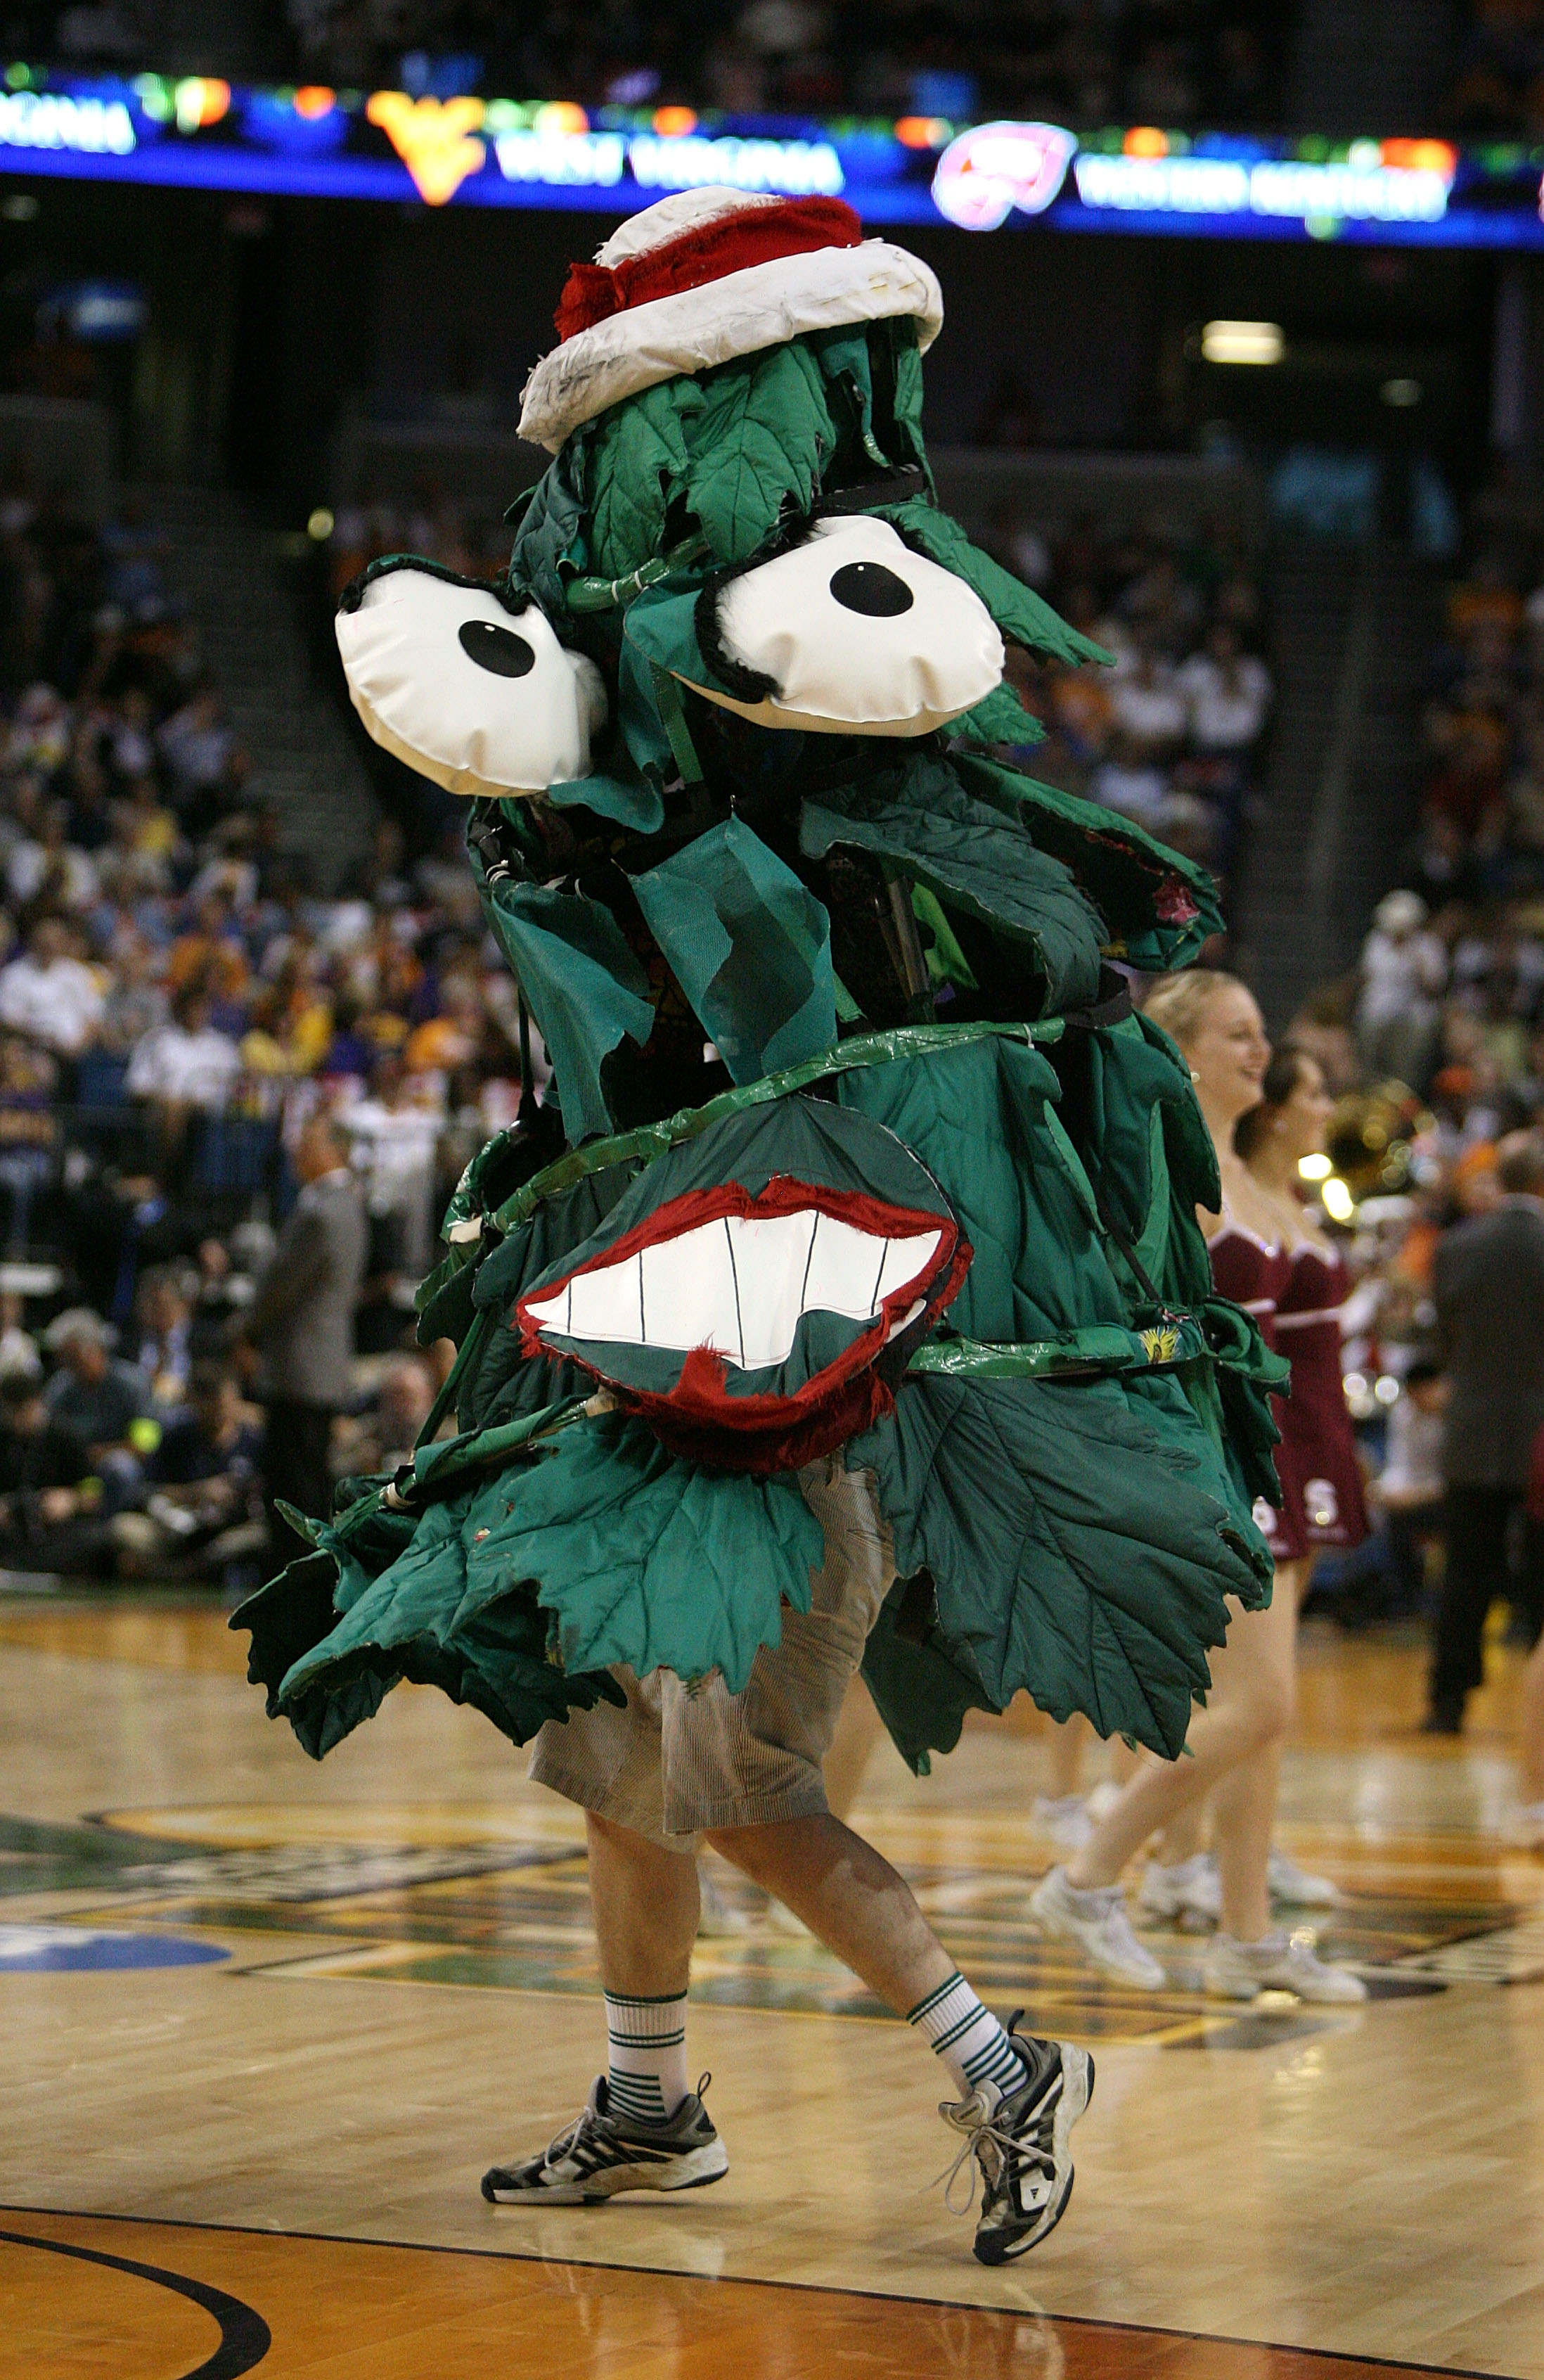 TAMPA, FL - APRIL 06:  The mascot for the Stanford Cardinal performs against the UCONN Huskies during their National Semifinal Game of the 2008 NCAA Women's Final Four at St. Pete Times Forum April 6, 2008 in Tampa, Florida.  (Photo by Doug Benc/Getty Ima